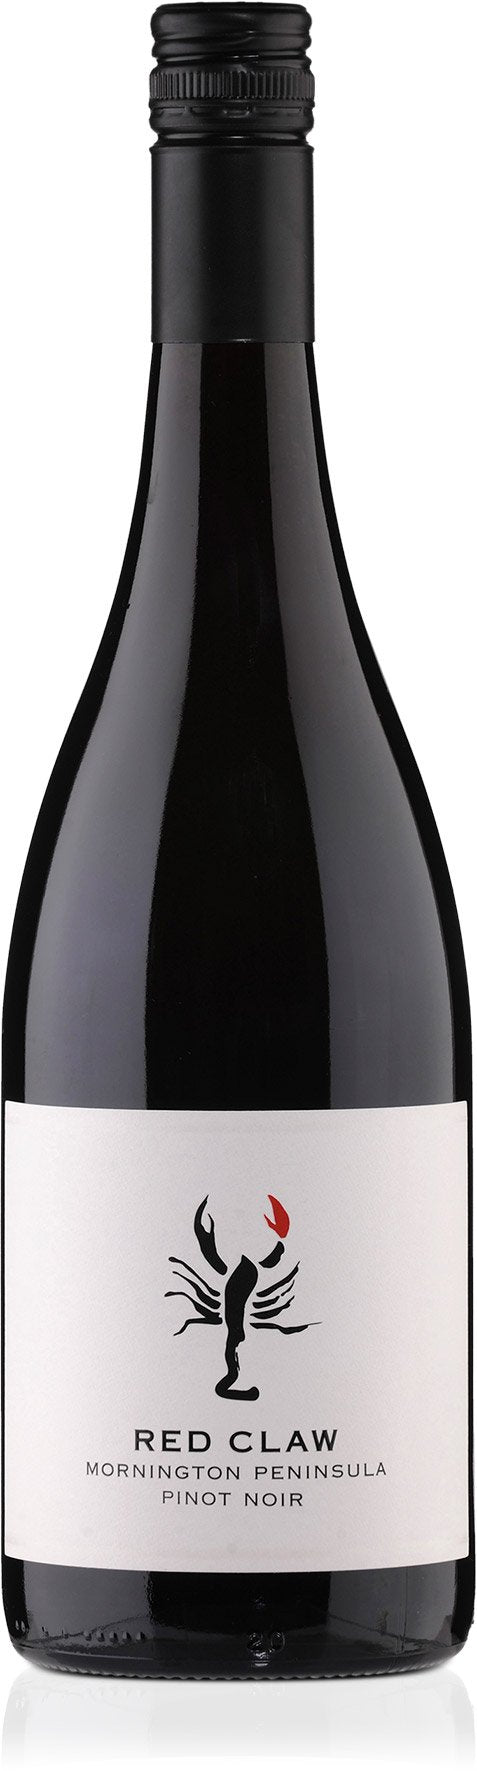 Red Claw-2018 Red Claw Pinot Noir-Pubble Alcohol Delivery